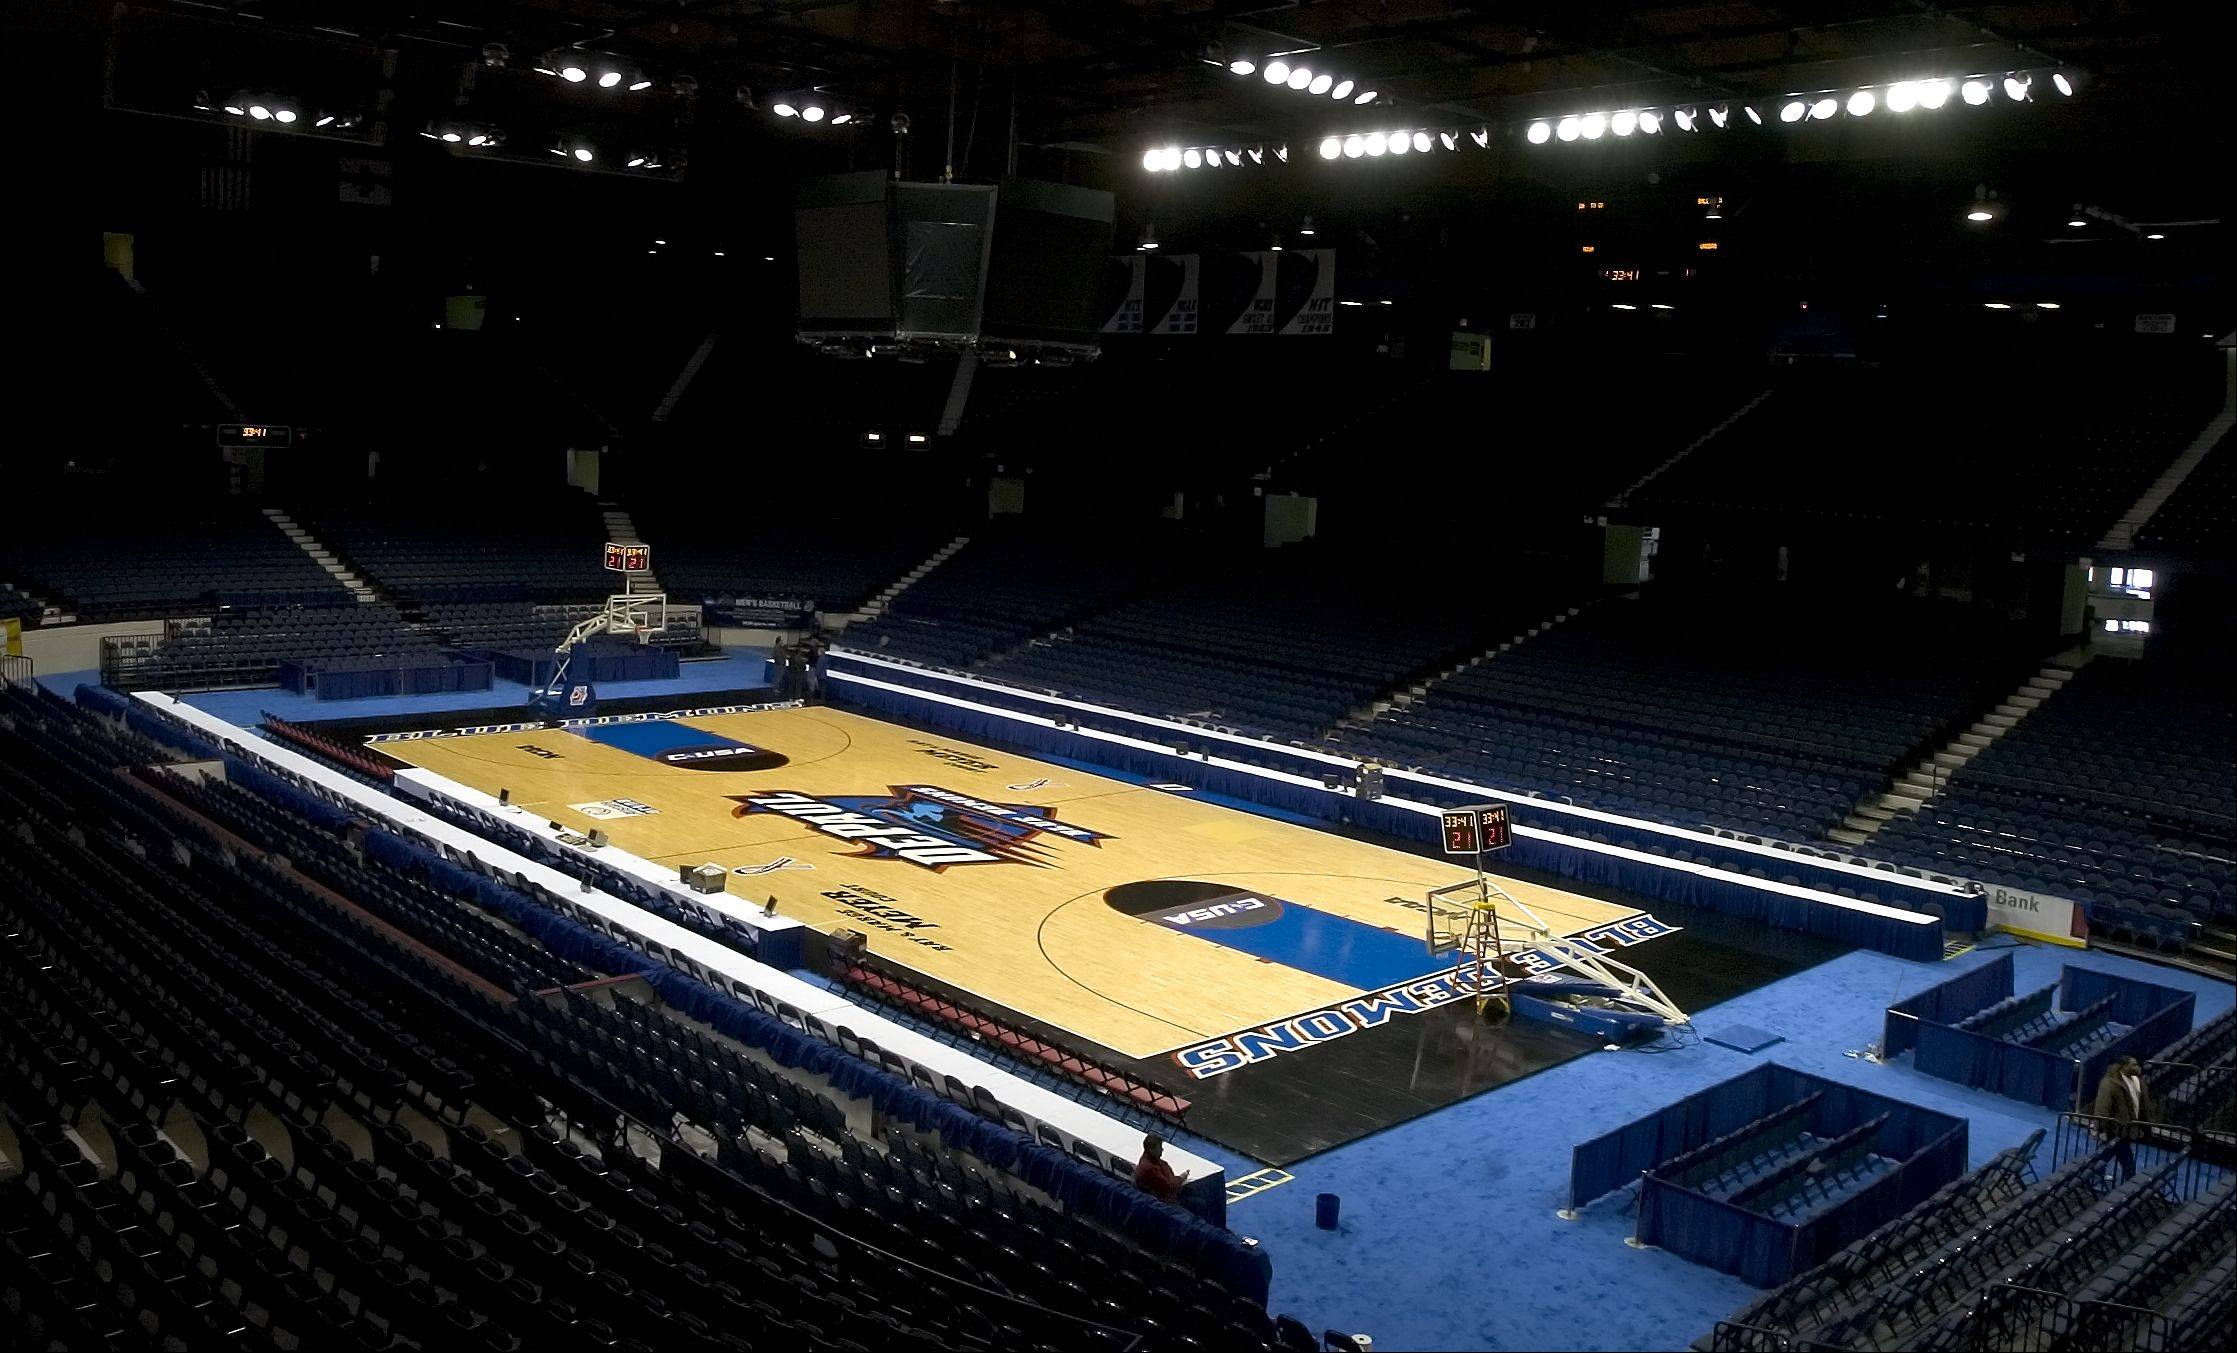 The DePaul University Blue Demons men�s basketball team will be moving from the Allstate Arena in Rosemont to a new stadium in Chicago under a deal announced this week by Chicago Mayor Rahm Emanuel.